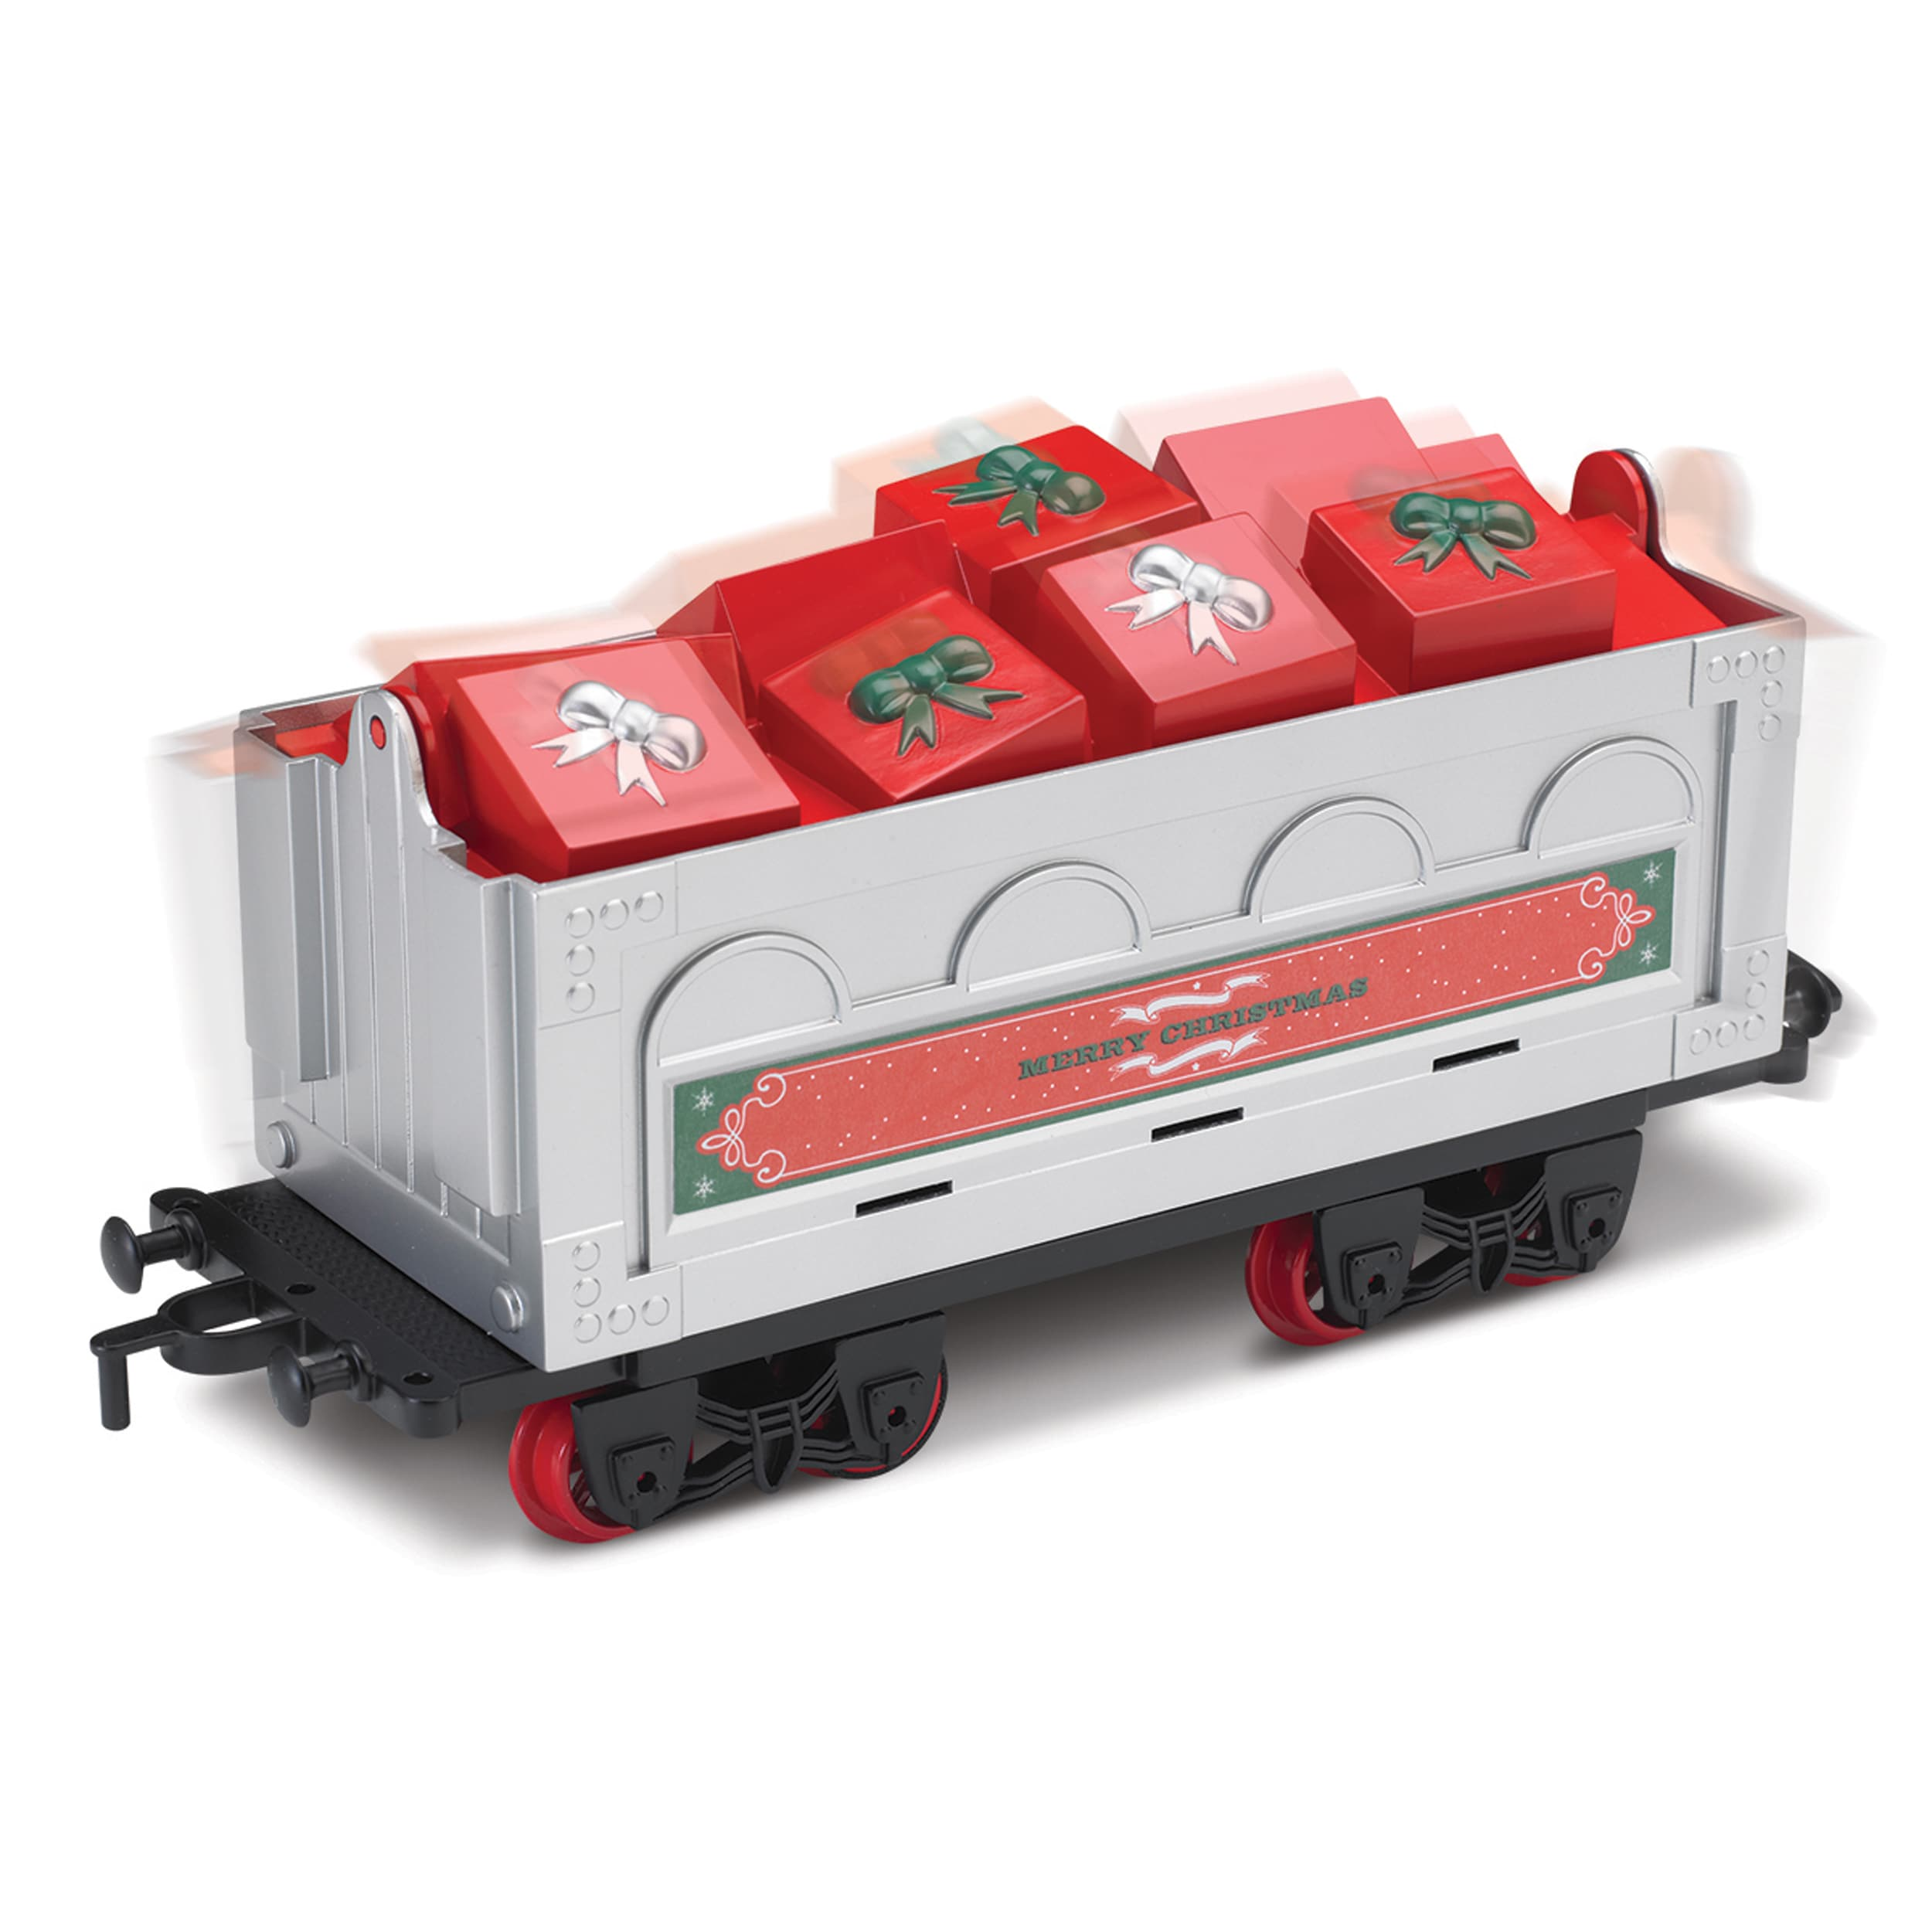 Blue Hat North Pole Junction Christmas Train Set -34 piece - Walmart.com